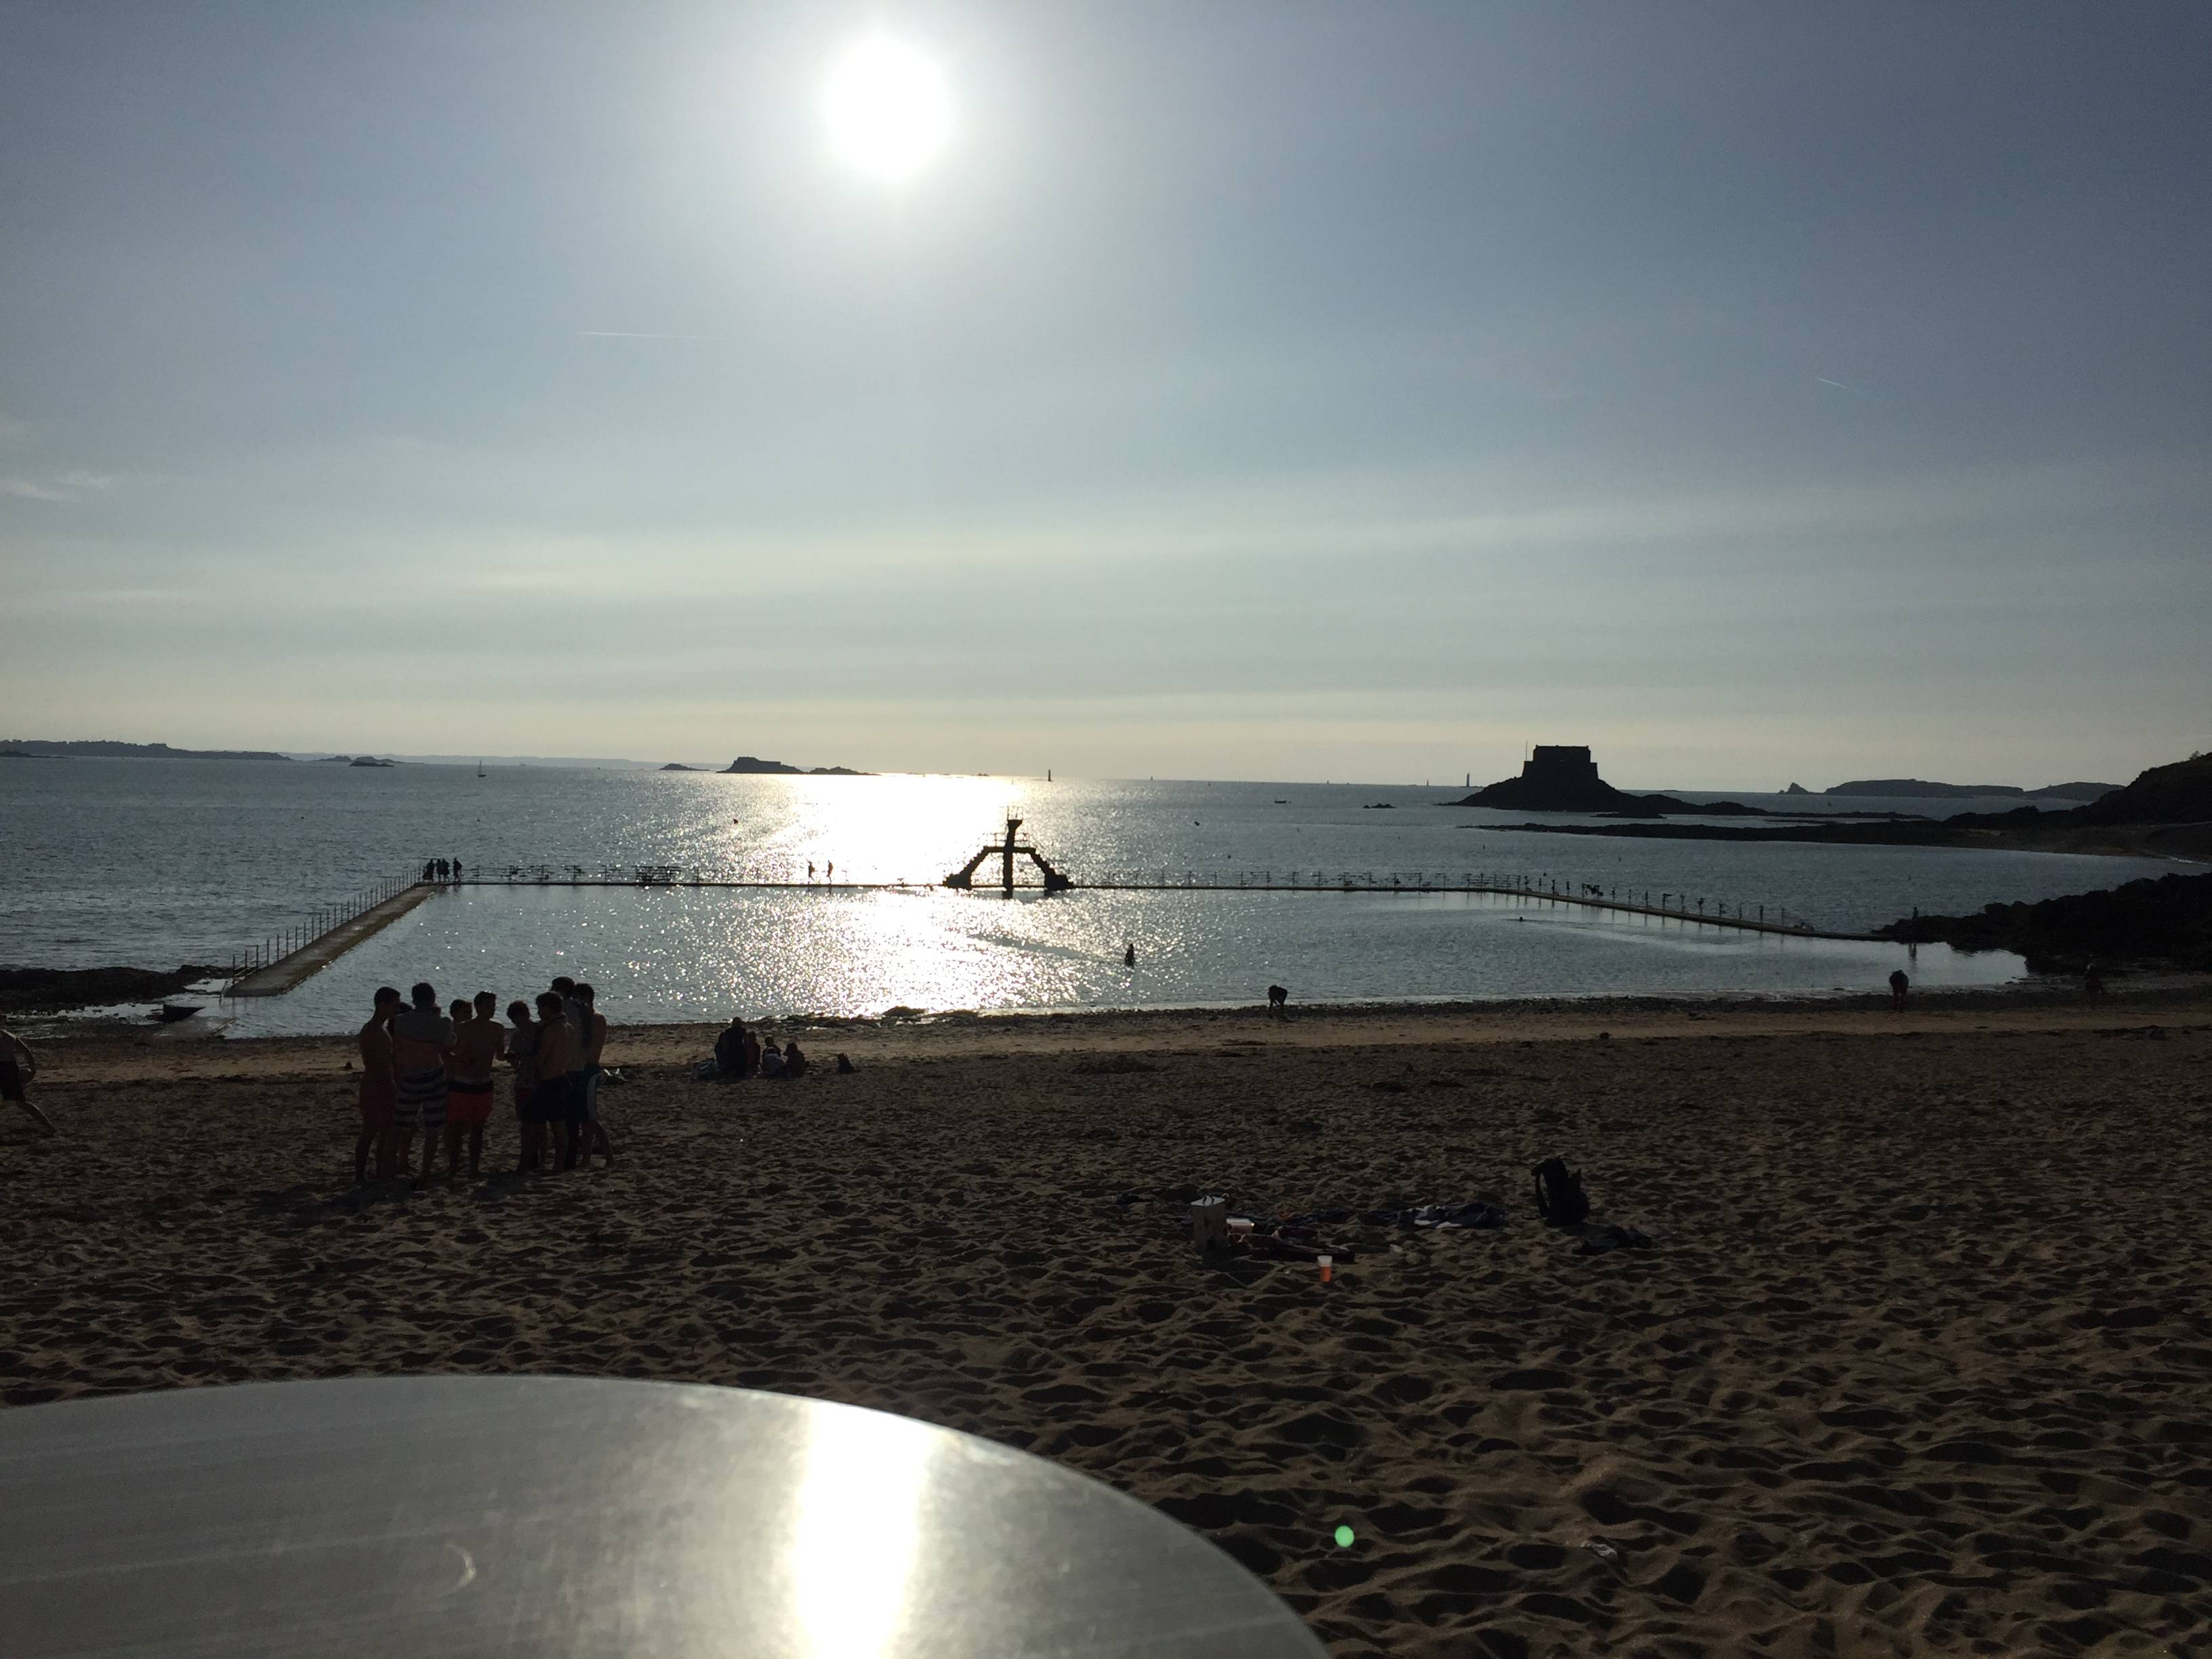 Photo 1: Saint Malo piscine naturelle